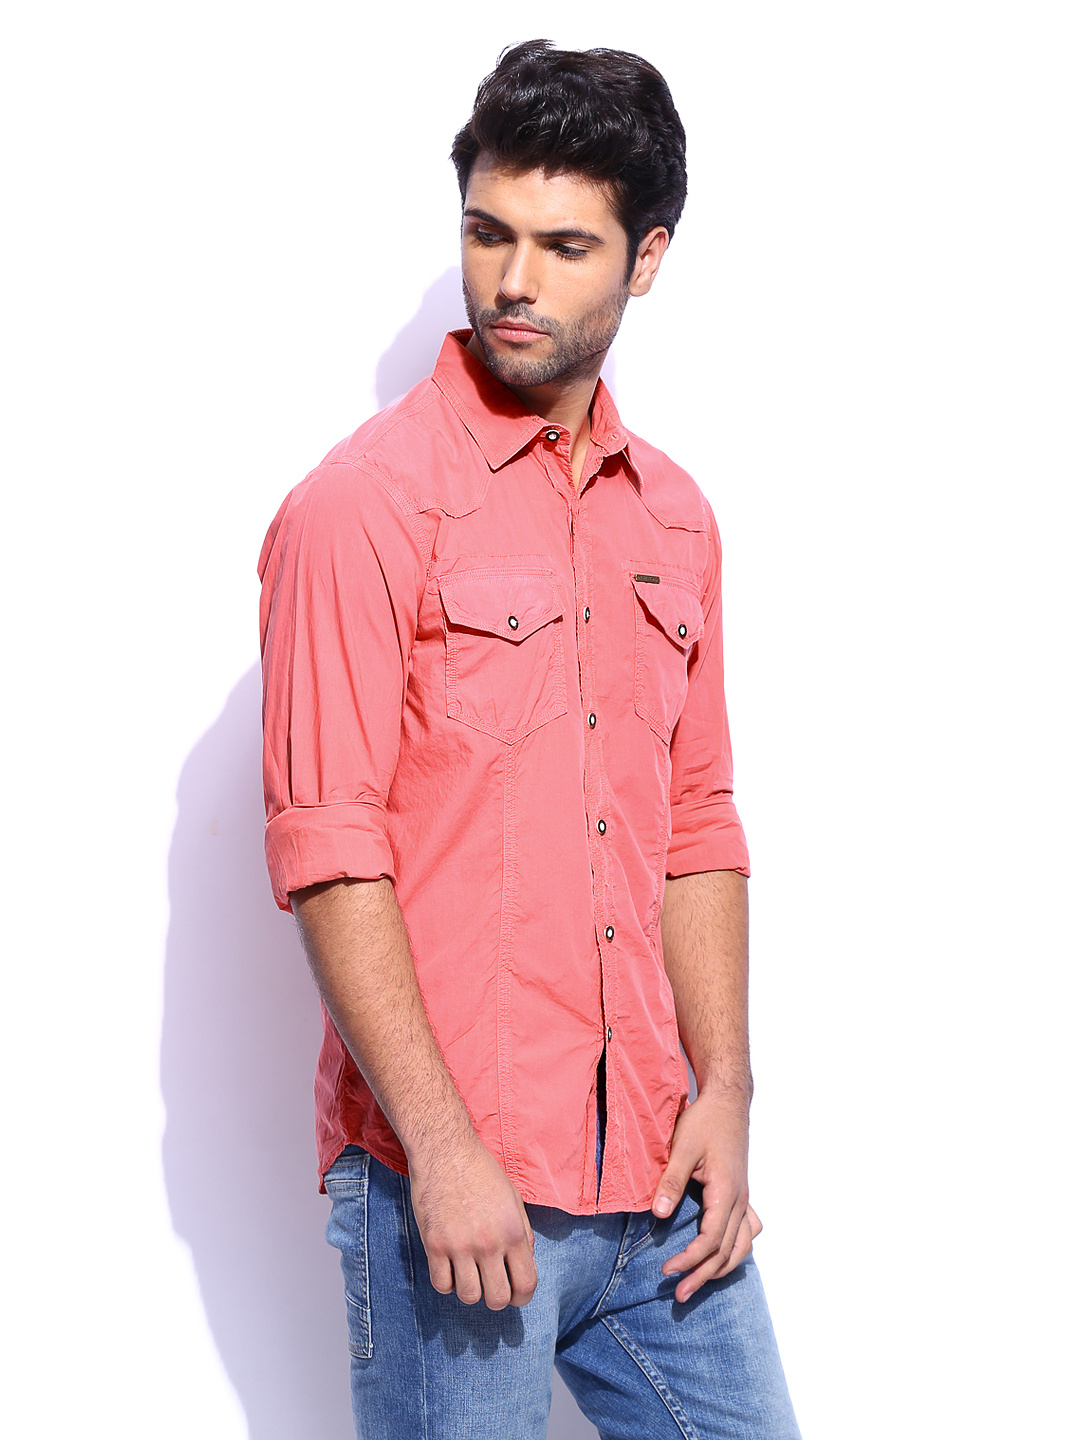 casual pink shirt for men mens pink casual shirts TYPPUDK